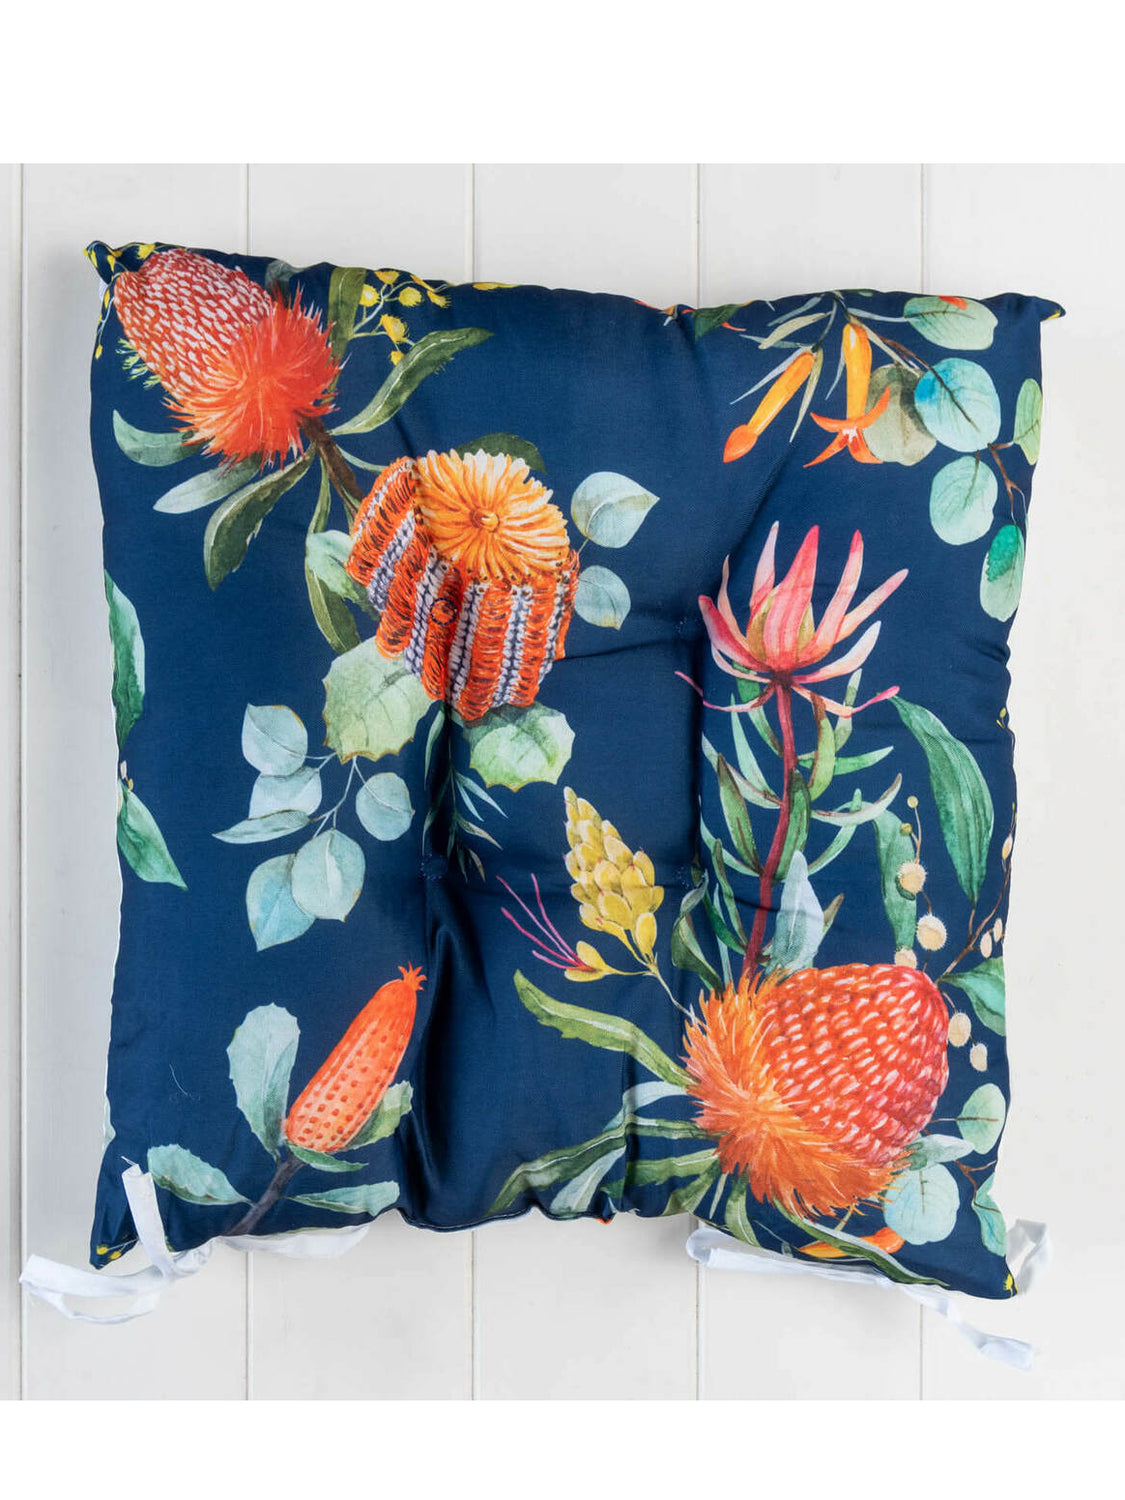 Banksia Navy - Chair Pad